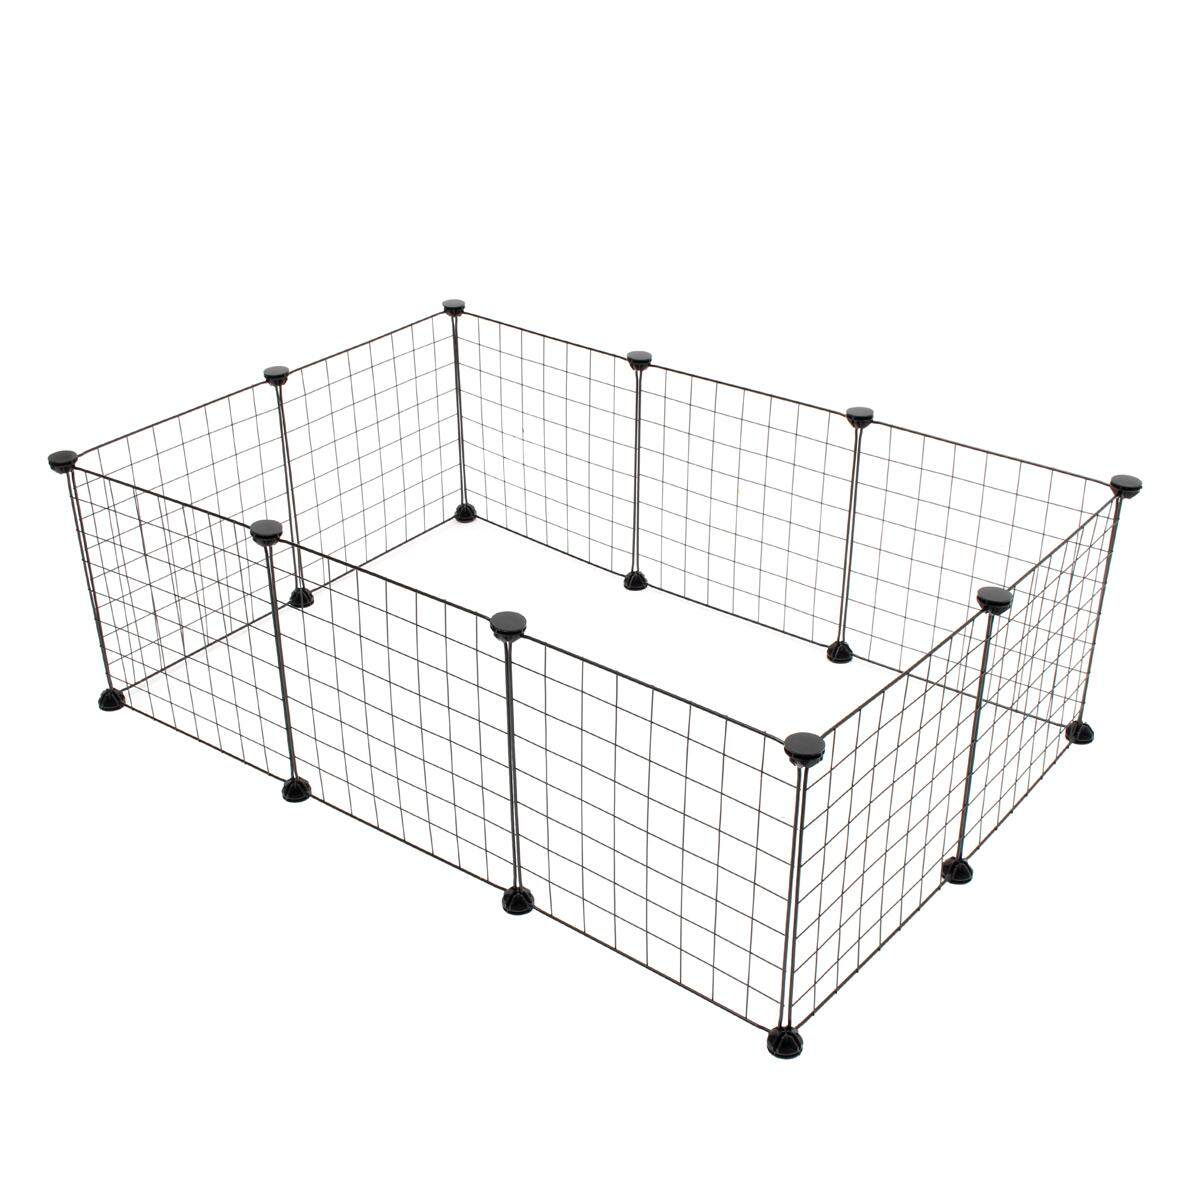 6/10 Panels Foldable Pet Puppy Playpen Crate Fence Kennel Exercise Animal Cage10 Panels - Intl By Audew.